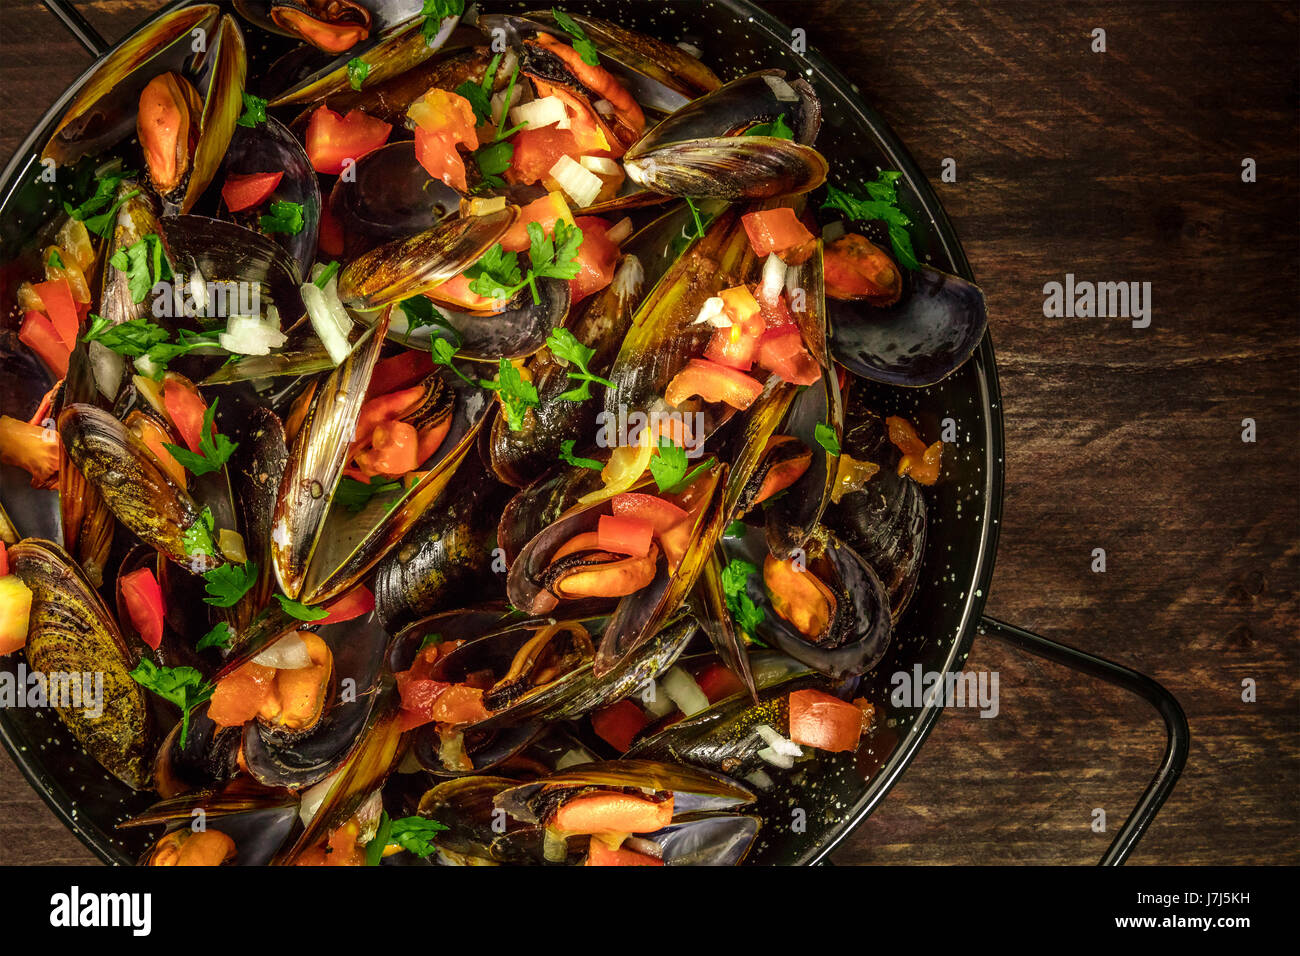 Skillet of marinara mussels on rustic background with copyspace - Stock Image